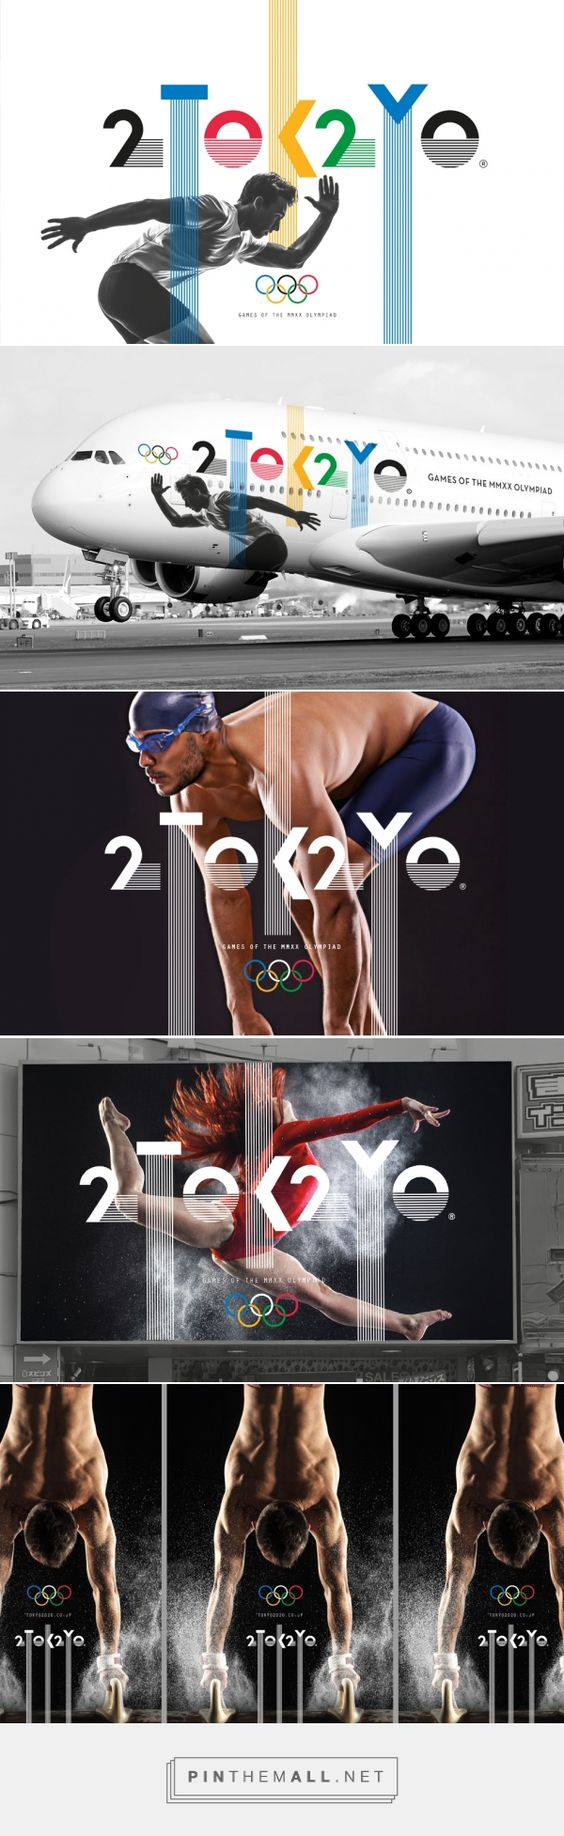 Dynamic and interesting #logo identity for the Tokyo 2020 Olympics which works beautifully with imagery and scope for #animation #Design